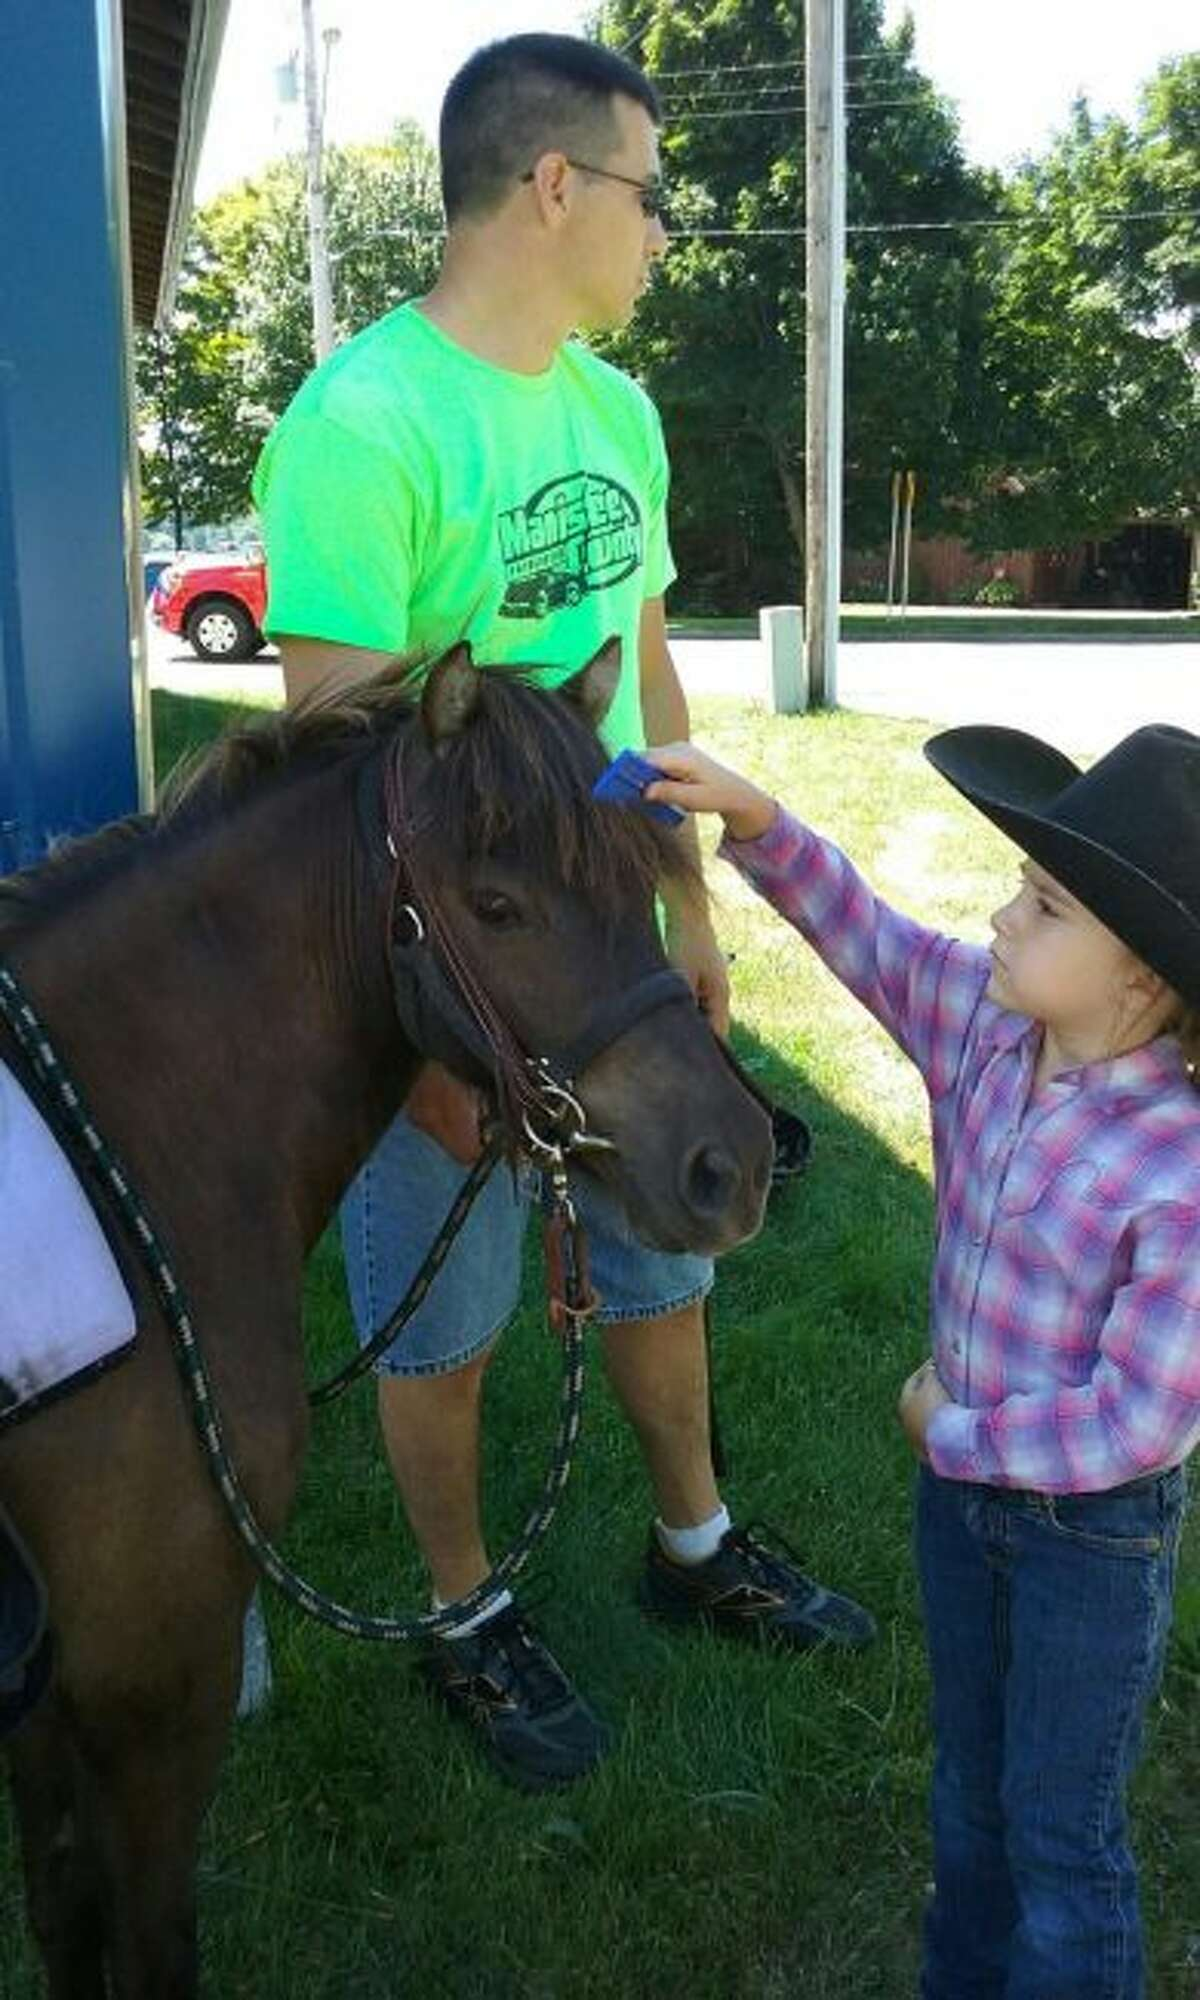 The Manistee County Youth/4-H Open Horse Show will be taking place at the Manistee County Fairgrounds in Onekama will take place at 10 a.m. on Aug. 21. Registration starts at 8:30 a.m. and the public is invited to take part in the show.